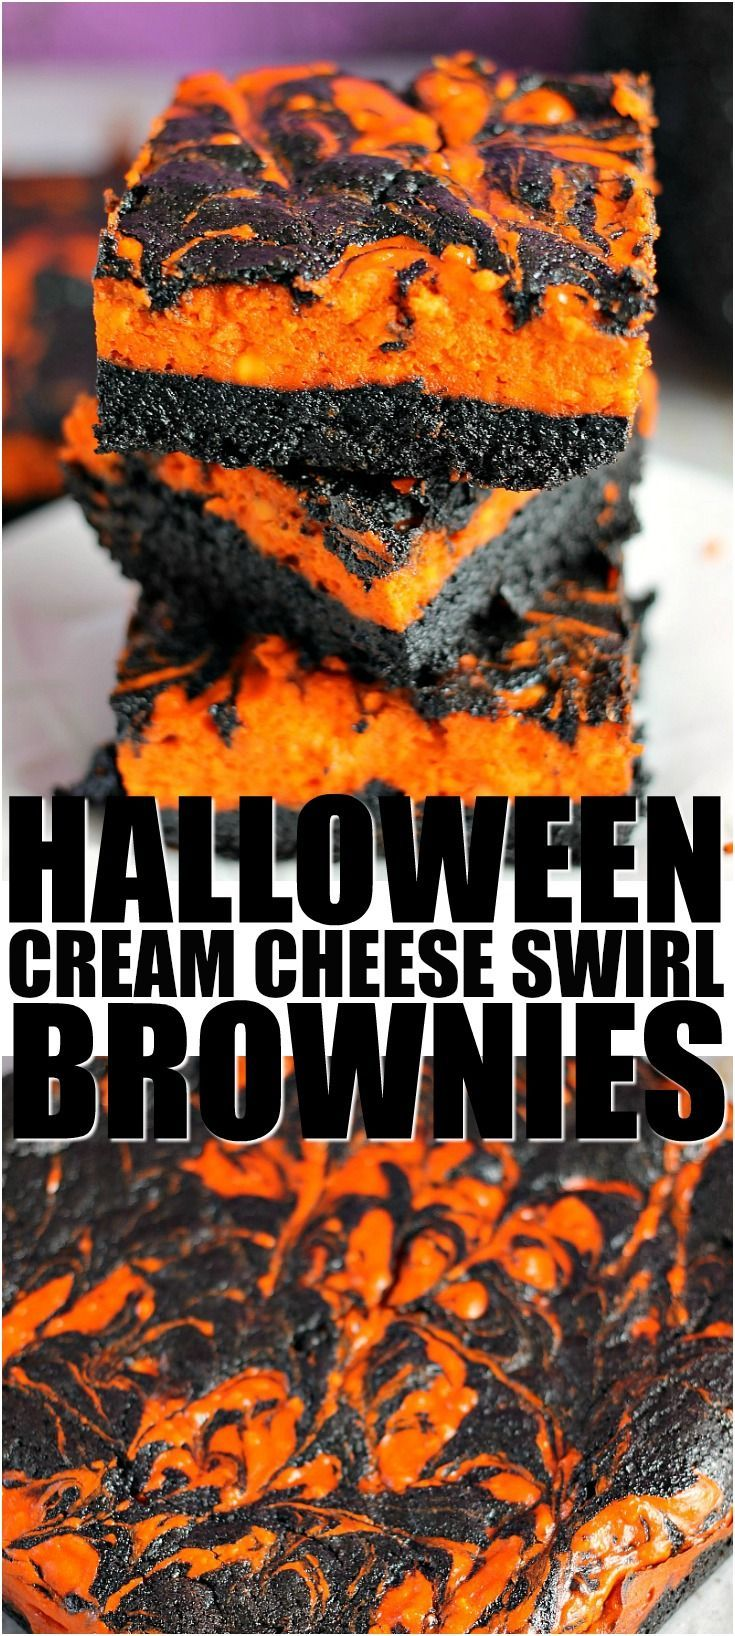 Halloween Cream Cheese Swirl Brownies have a layer of rich, dark chocolate brownie topped with a layer of orange cheesecake then swirled together for a spooky treat. | Persnickety Plates (Bake Cookies Cream Cheeses)